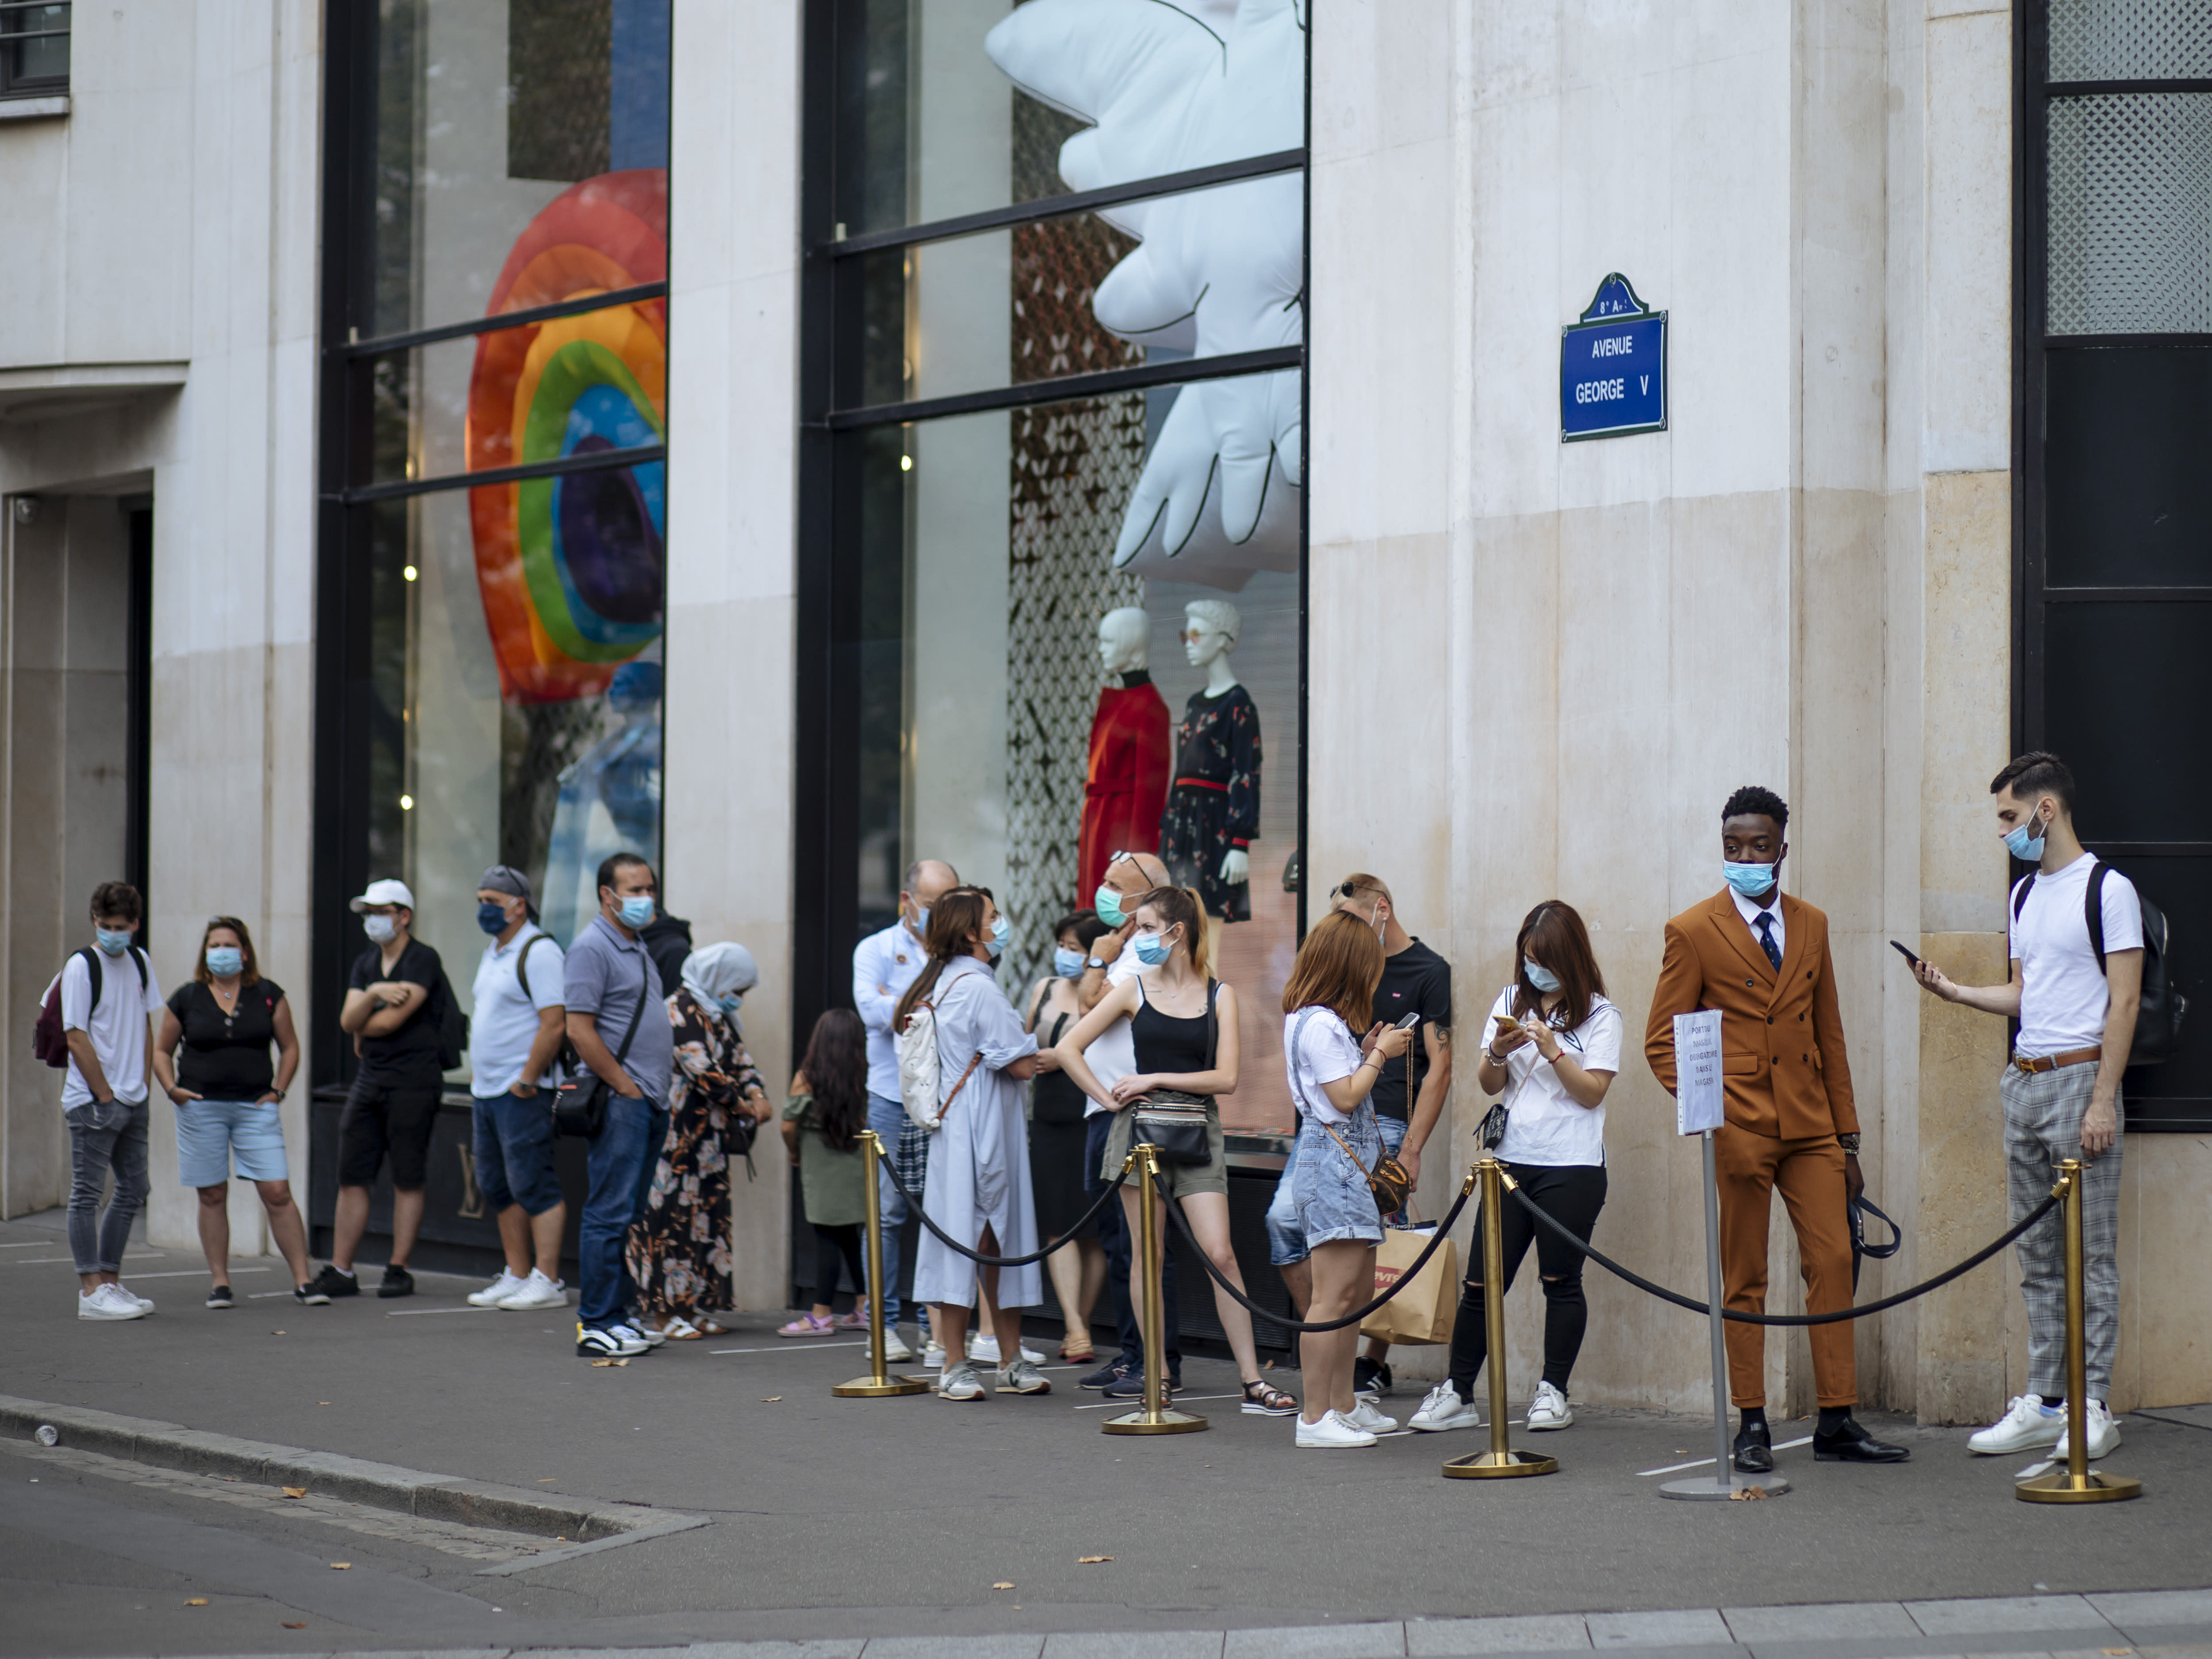 """People with face masks queue as they wait to get in the Louis Vuitton shop on the Champs Elysee avenue in Paris, Saturday, Aug. 15, 2020. Paris extended the areas of the city where pedestrians will be obliged to wear masks starting Saturday morning after health officials said that the coronavirus is """"active"""". The Champs-Elysees Avenue and the neighbourhood around the Louvre Museum are among zones where masks will be obligatory. (AP Photo/Kamil Zihnioglu)"""